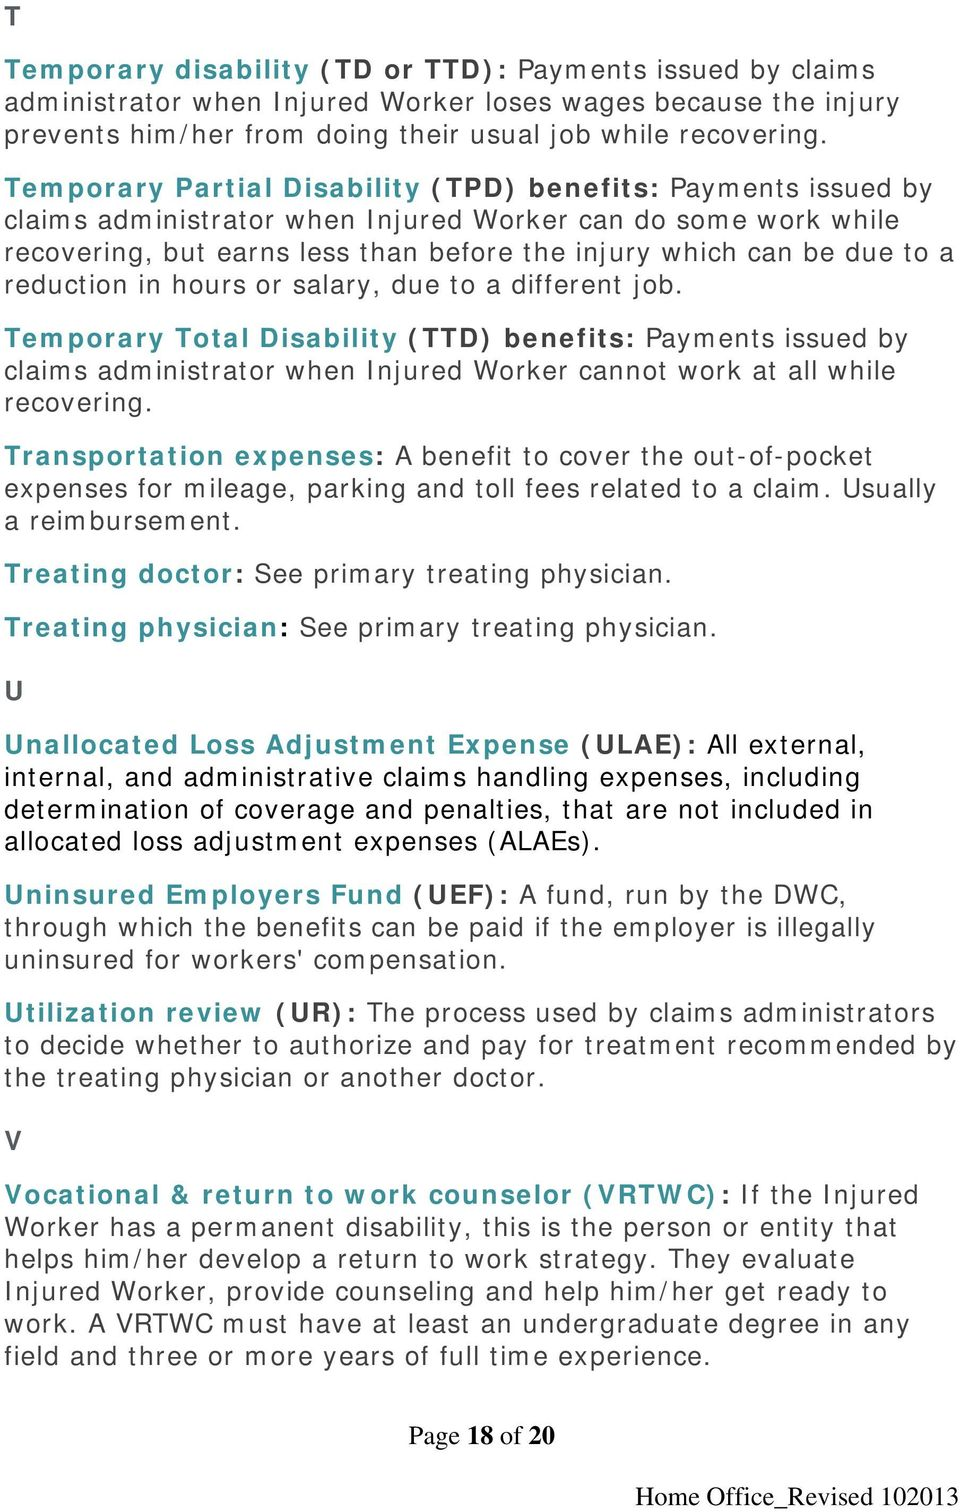 reduction in hours or salary, due to a different job. Temporary Total Disability (TTD) benefits: Payments issued by claims administrator when Injured Worker cannot work at all while recovering.